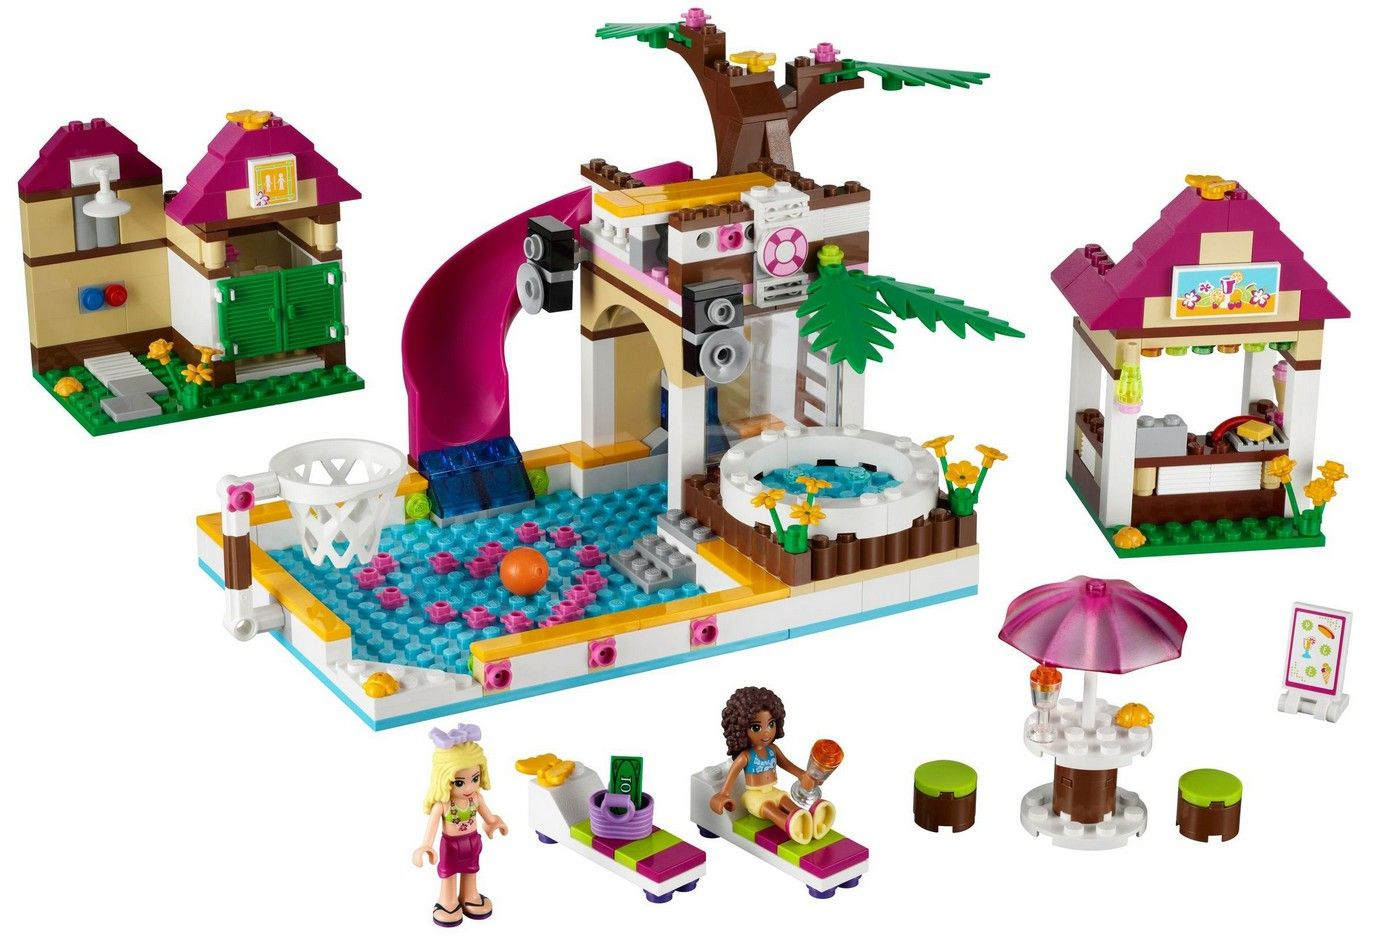 Lego Friends Heartlake City Pool Byrnes line